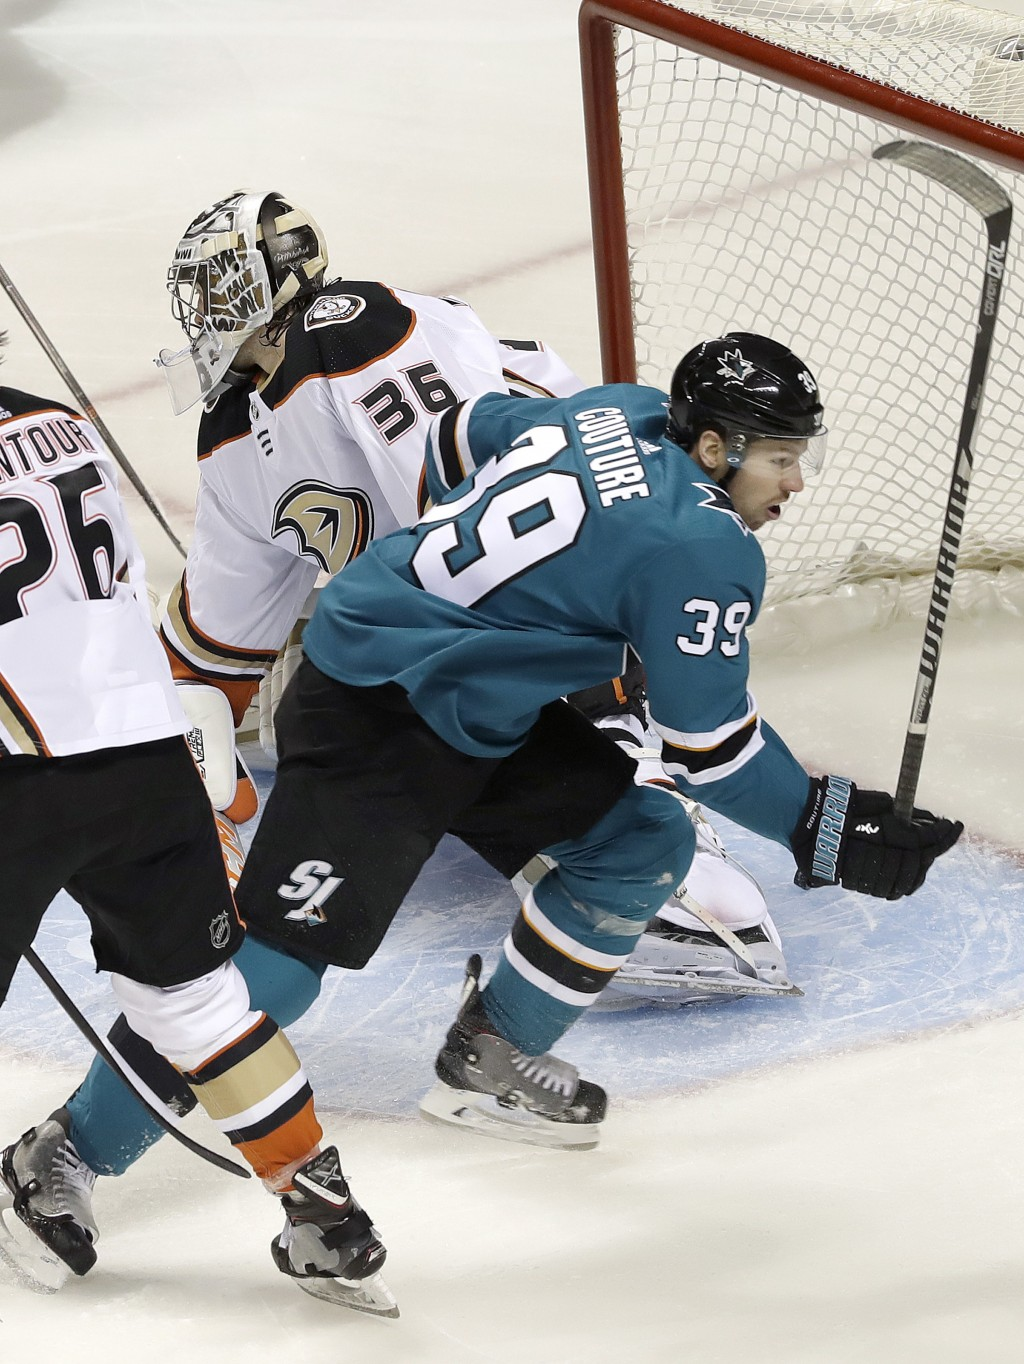 San Jose Sharks center Logan Couture (39) reacts after scoring a goal against Anaheim Ducks goalie John Gibson (36) during the first period of Game 3